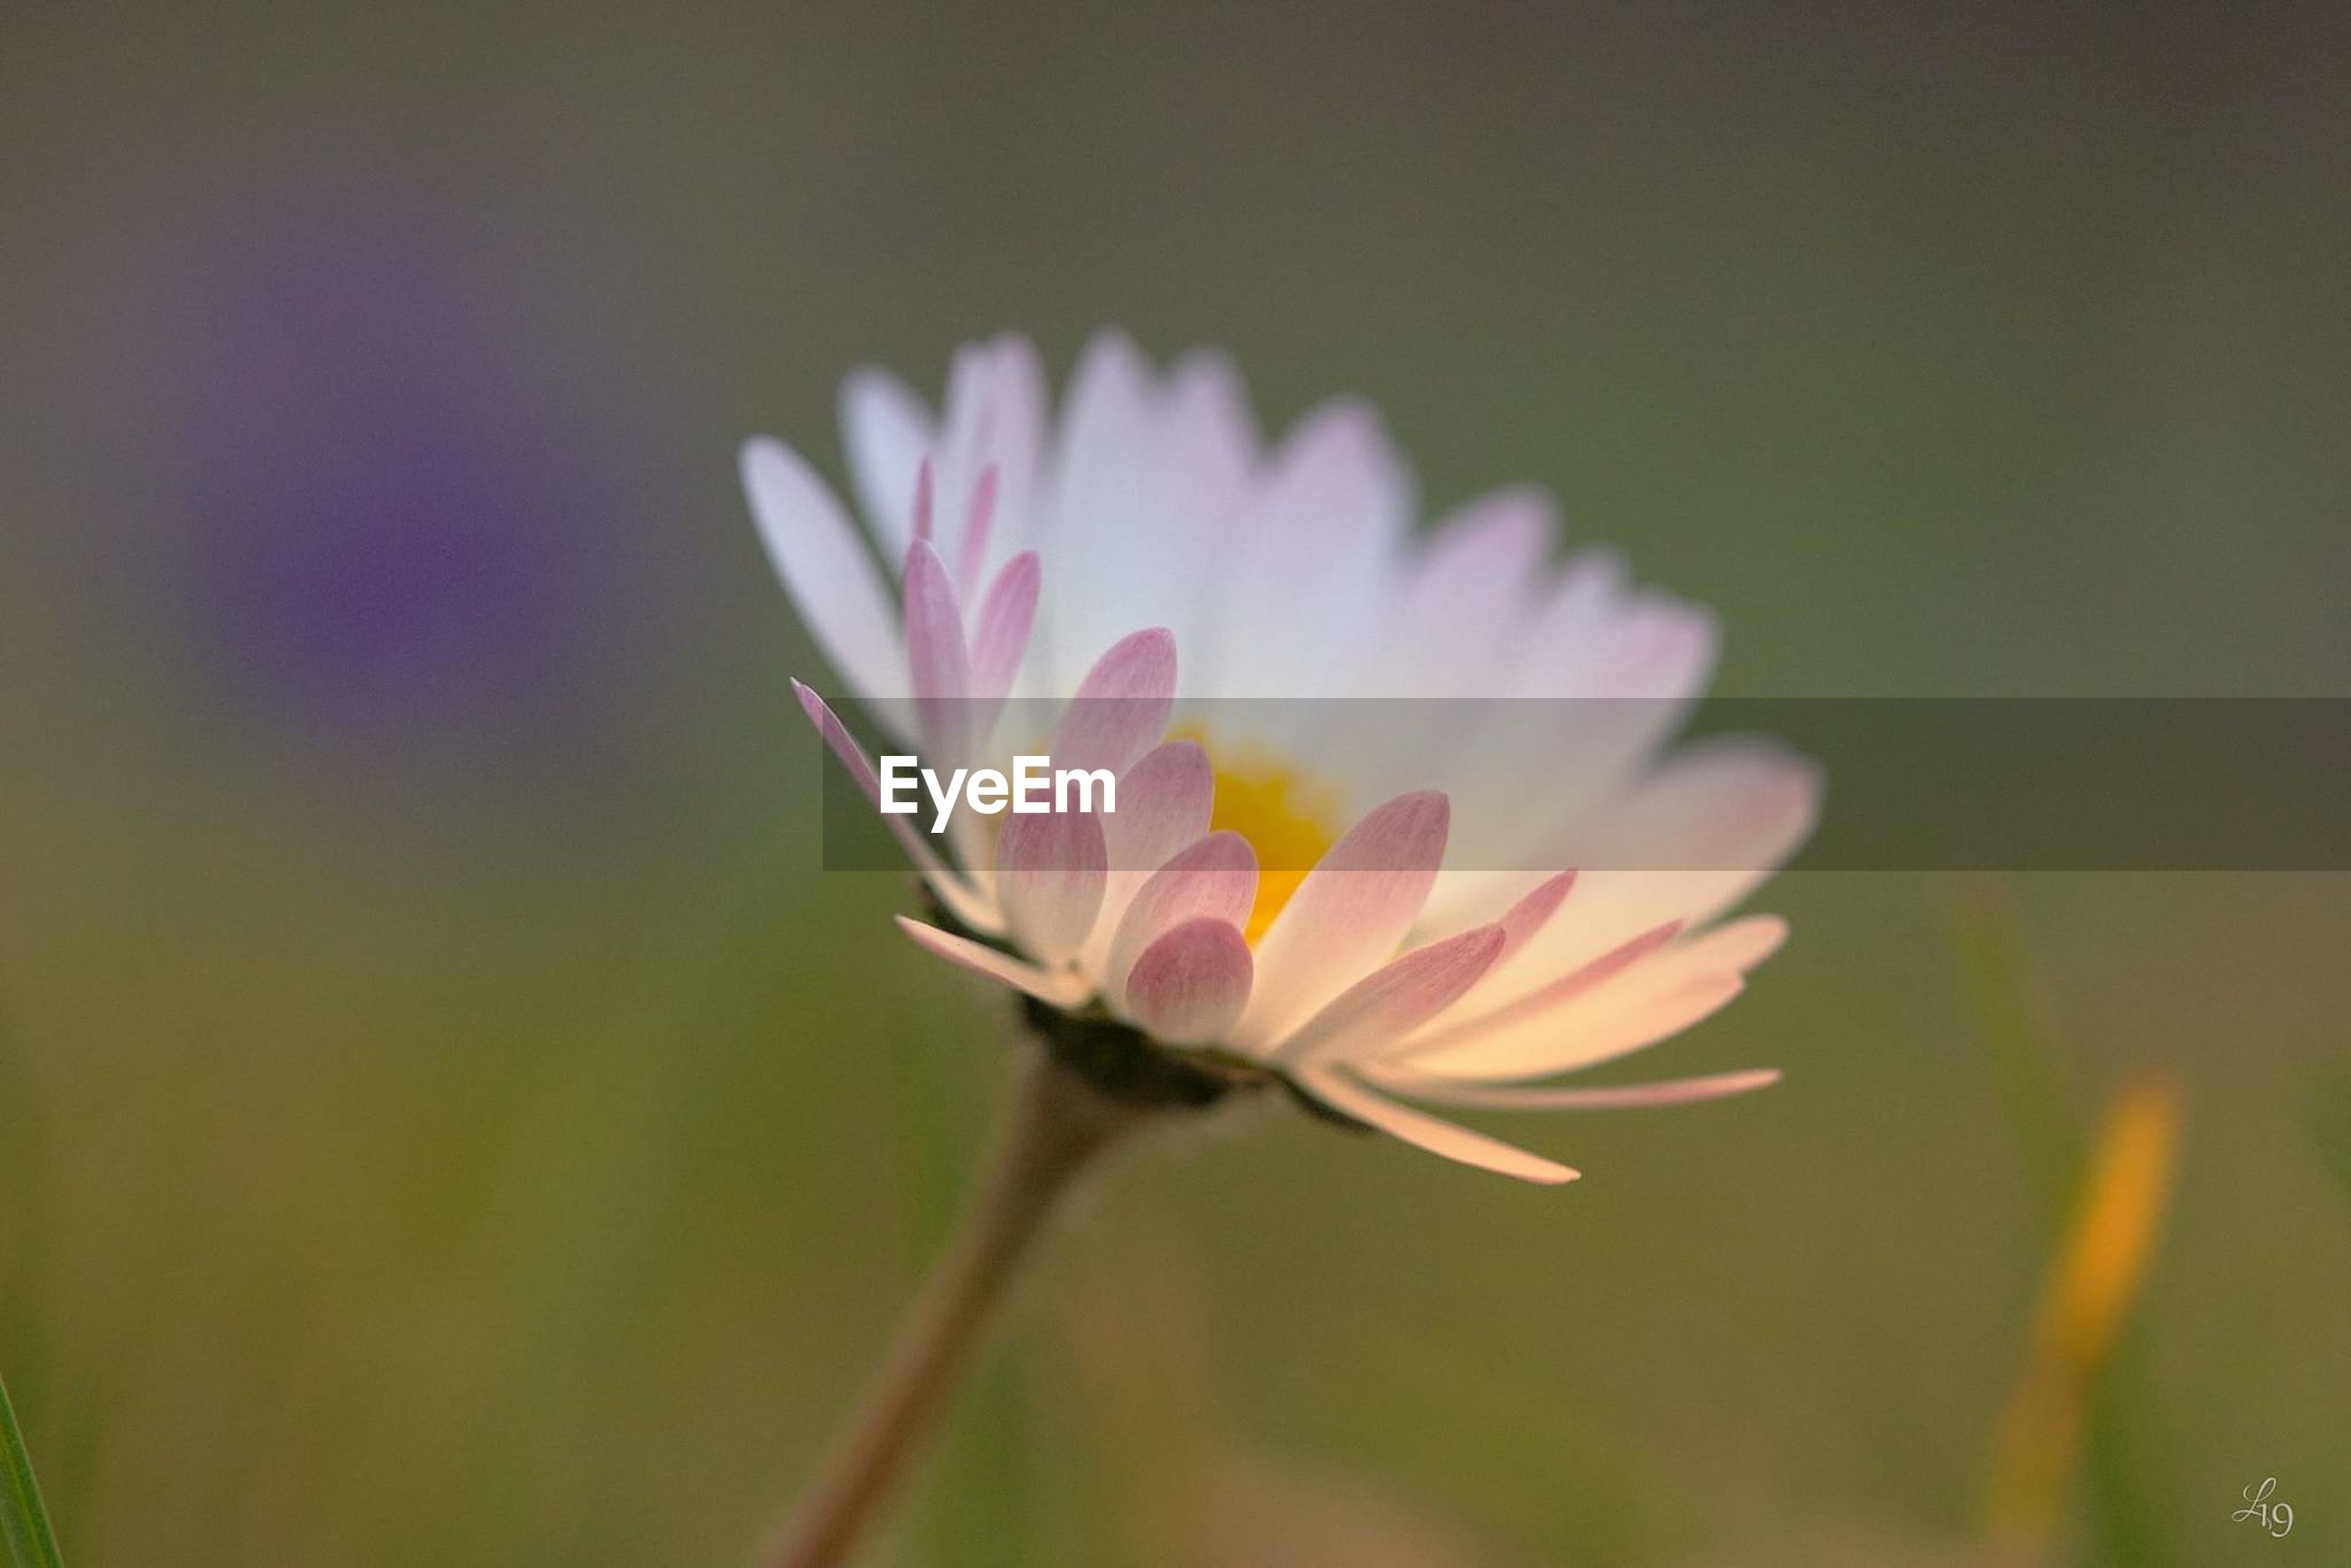 flowering plant, flower, freshness, vulnerability, fragility, plant, beauty in nature, close-up, petal, inflorescence, flower head, growth, nature, no people, water lily, pink color, focus on foreground, plant stem, selective focus, pollen, purple, sepal